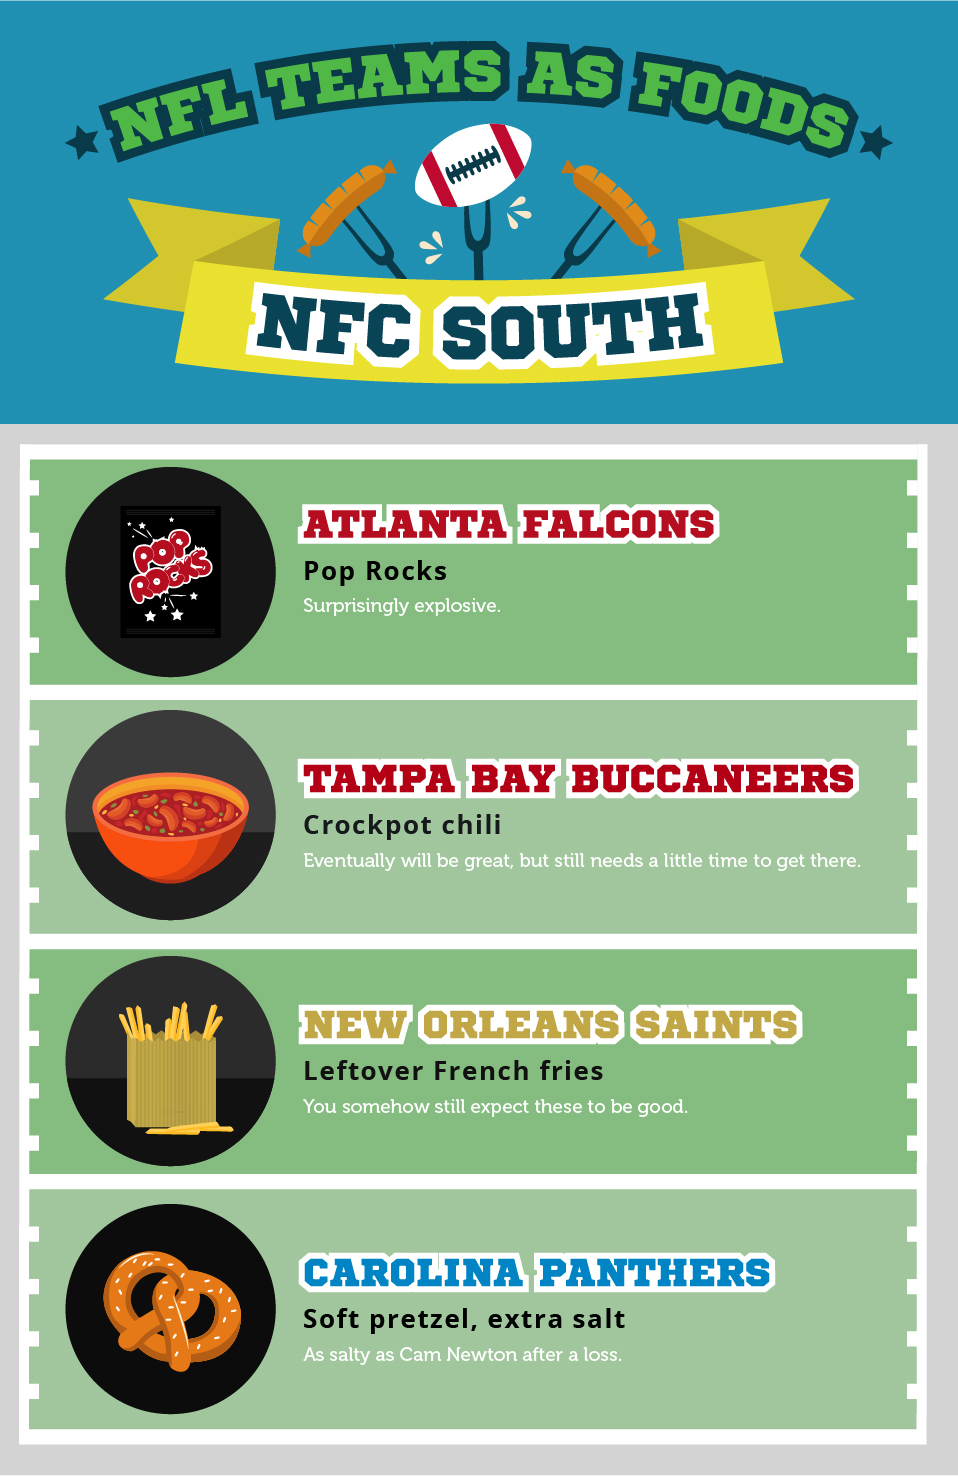 NFL Teams as Food: NFC South